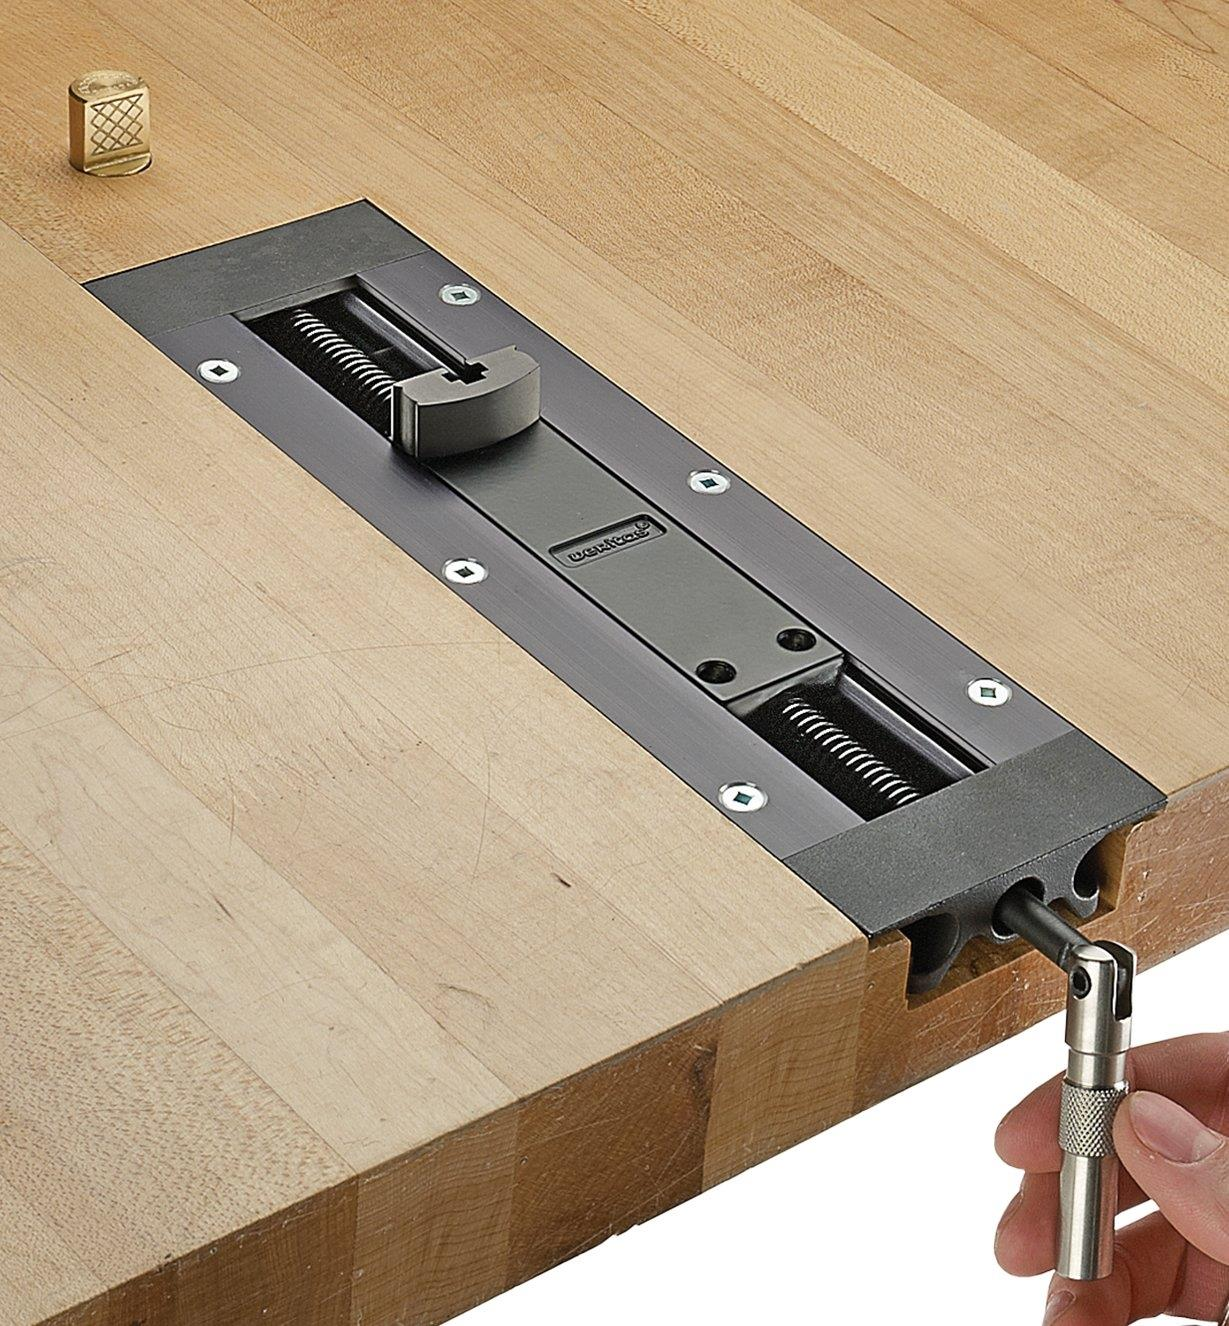 Inset vise installed in workbench